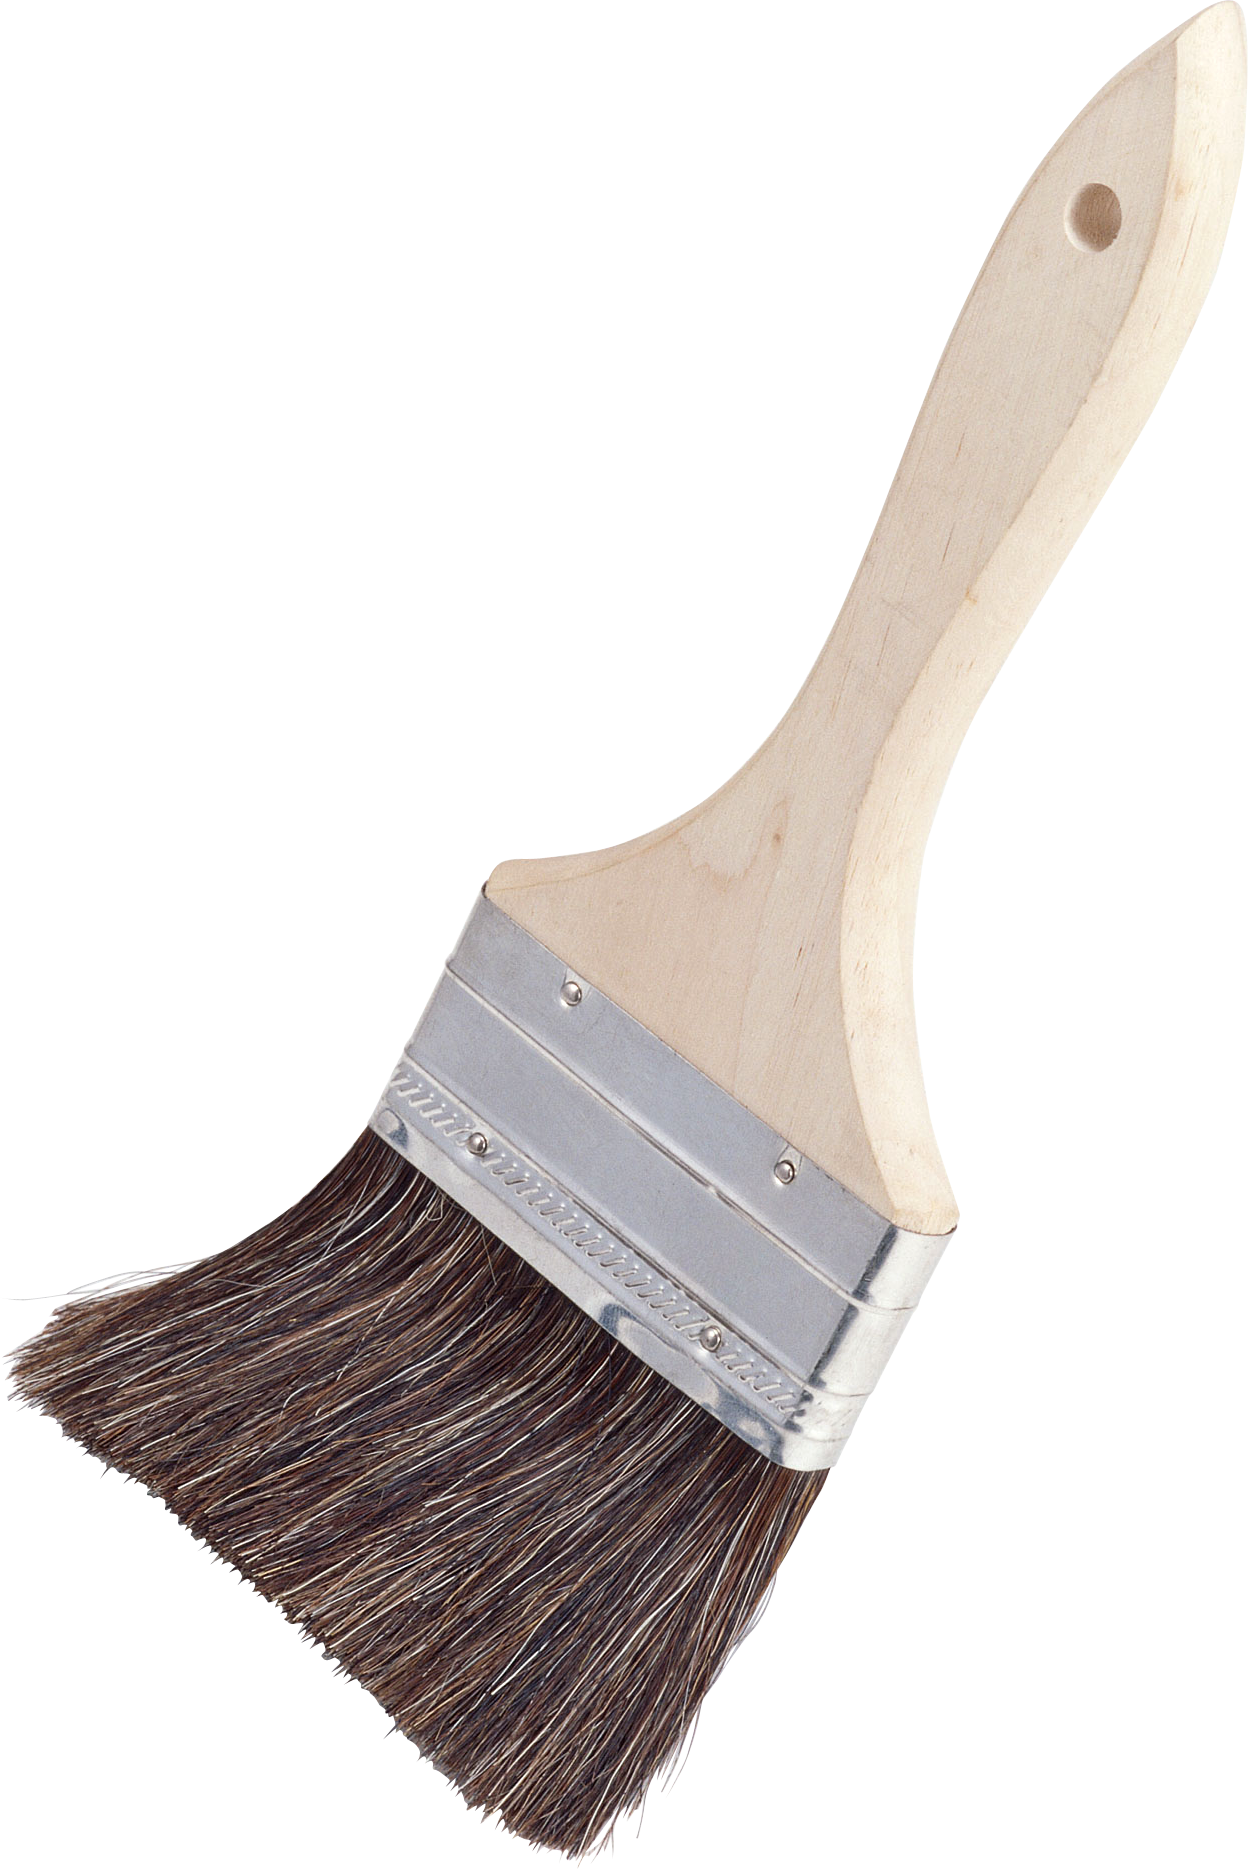 Paint Brush Png Image Paint Brushes Brush Png Images